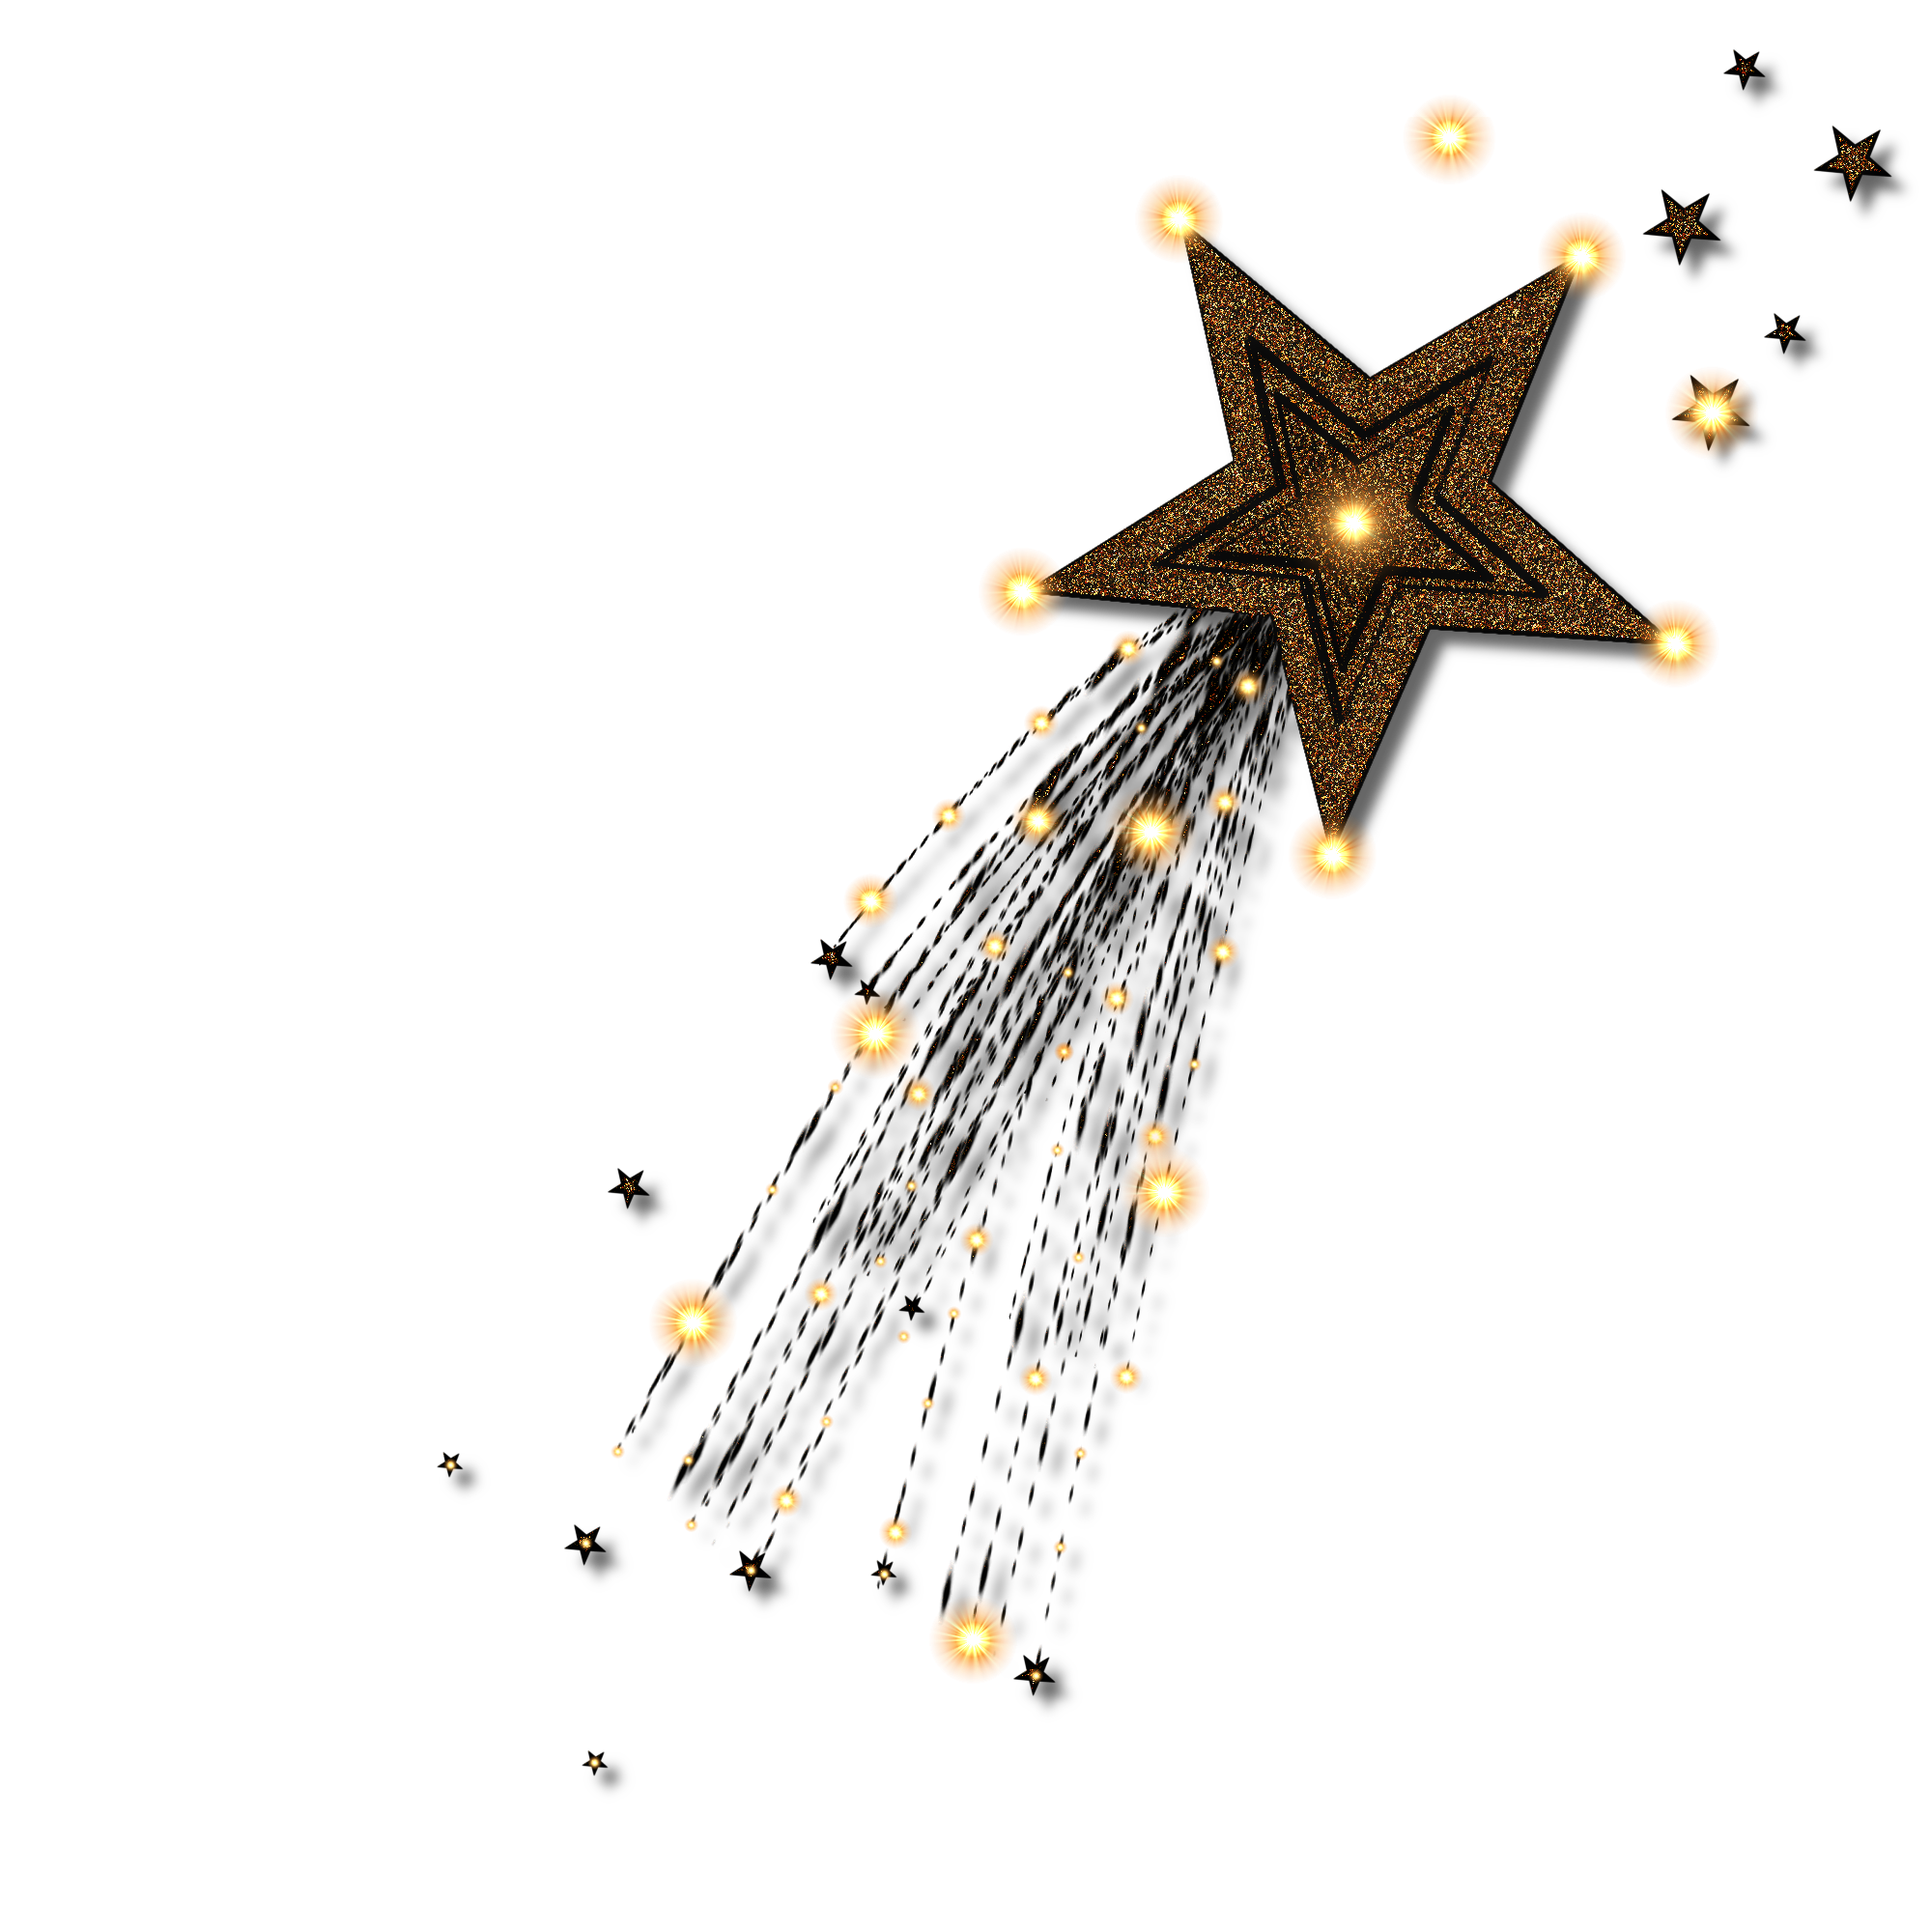 Star Png Transparent Background 2019